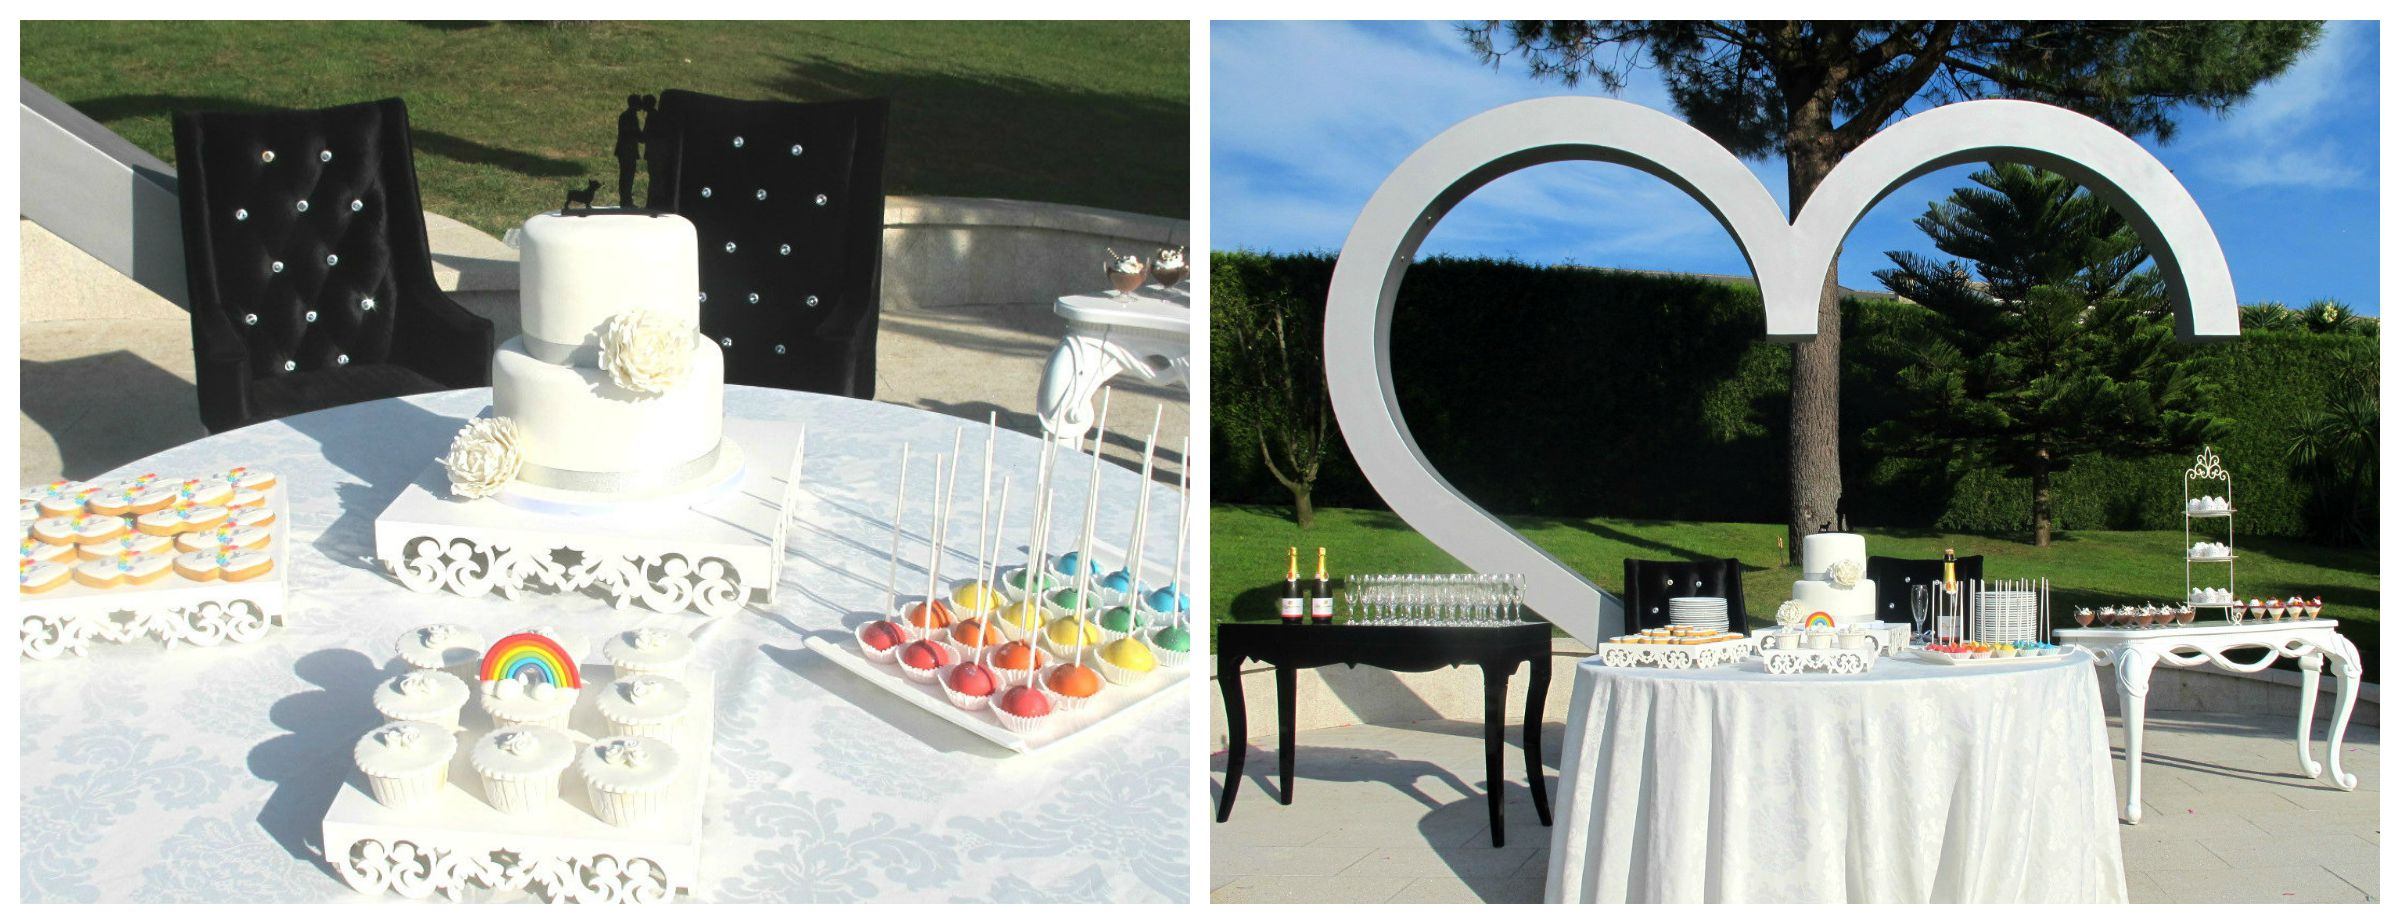 Sweet buffet rainbow wedding